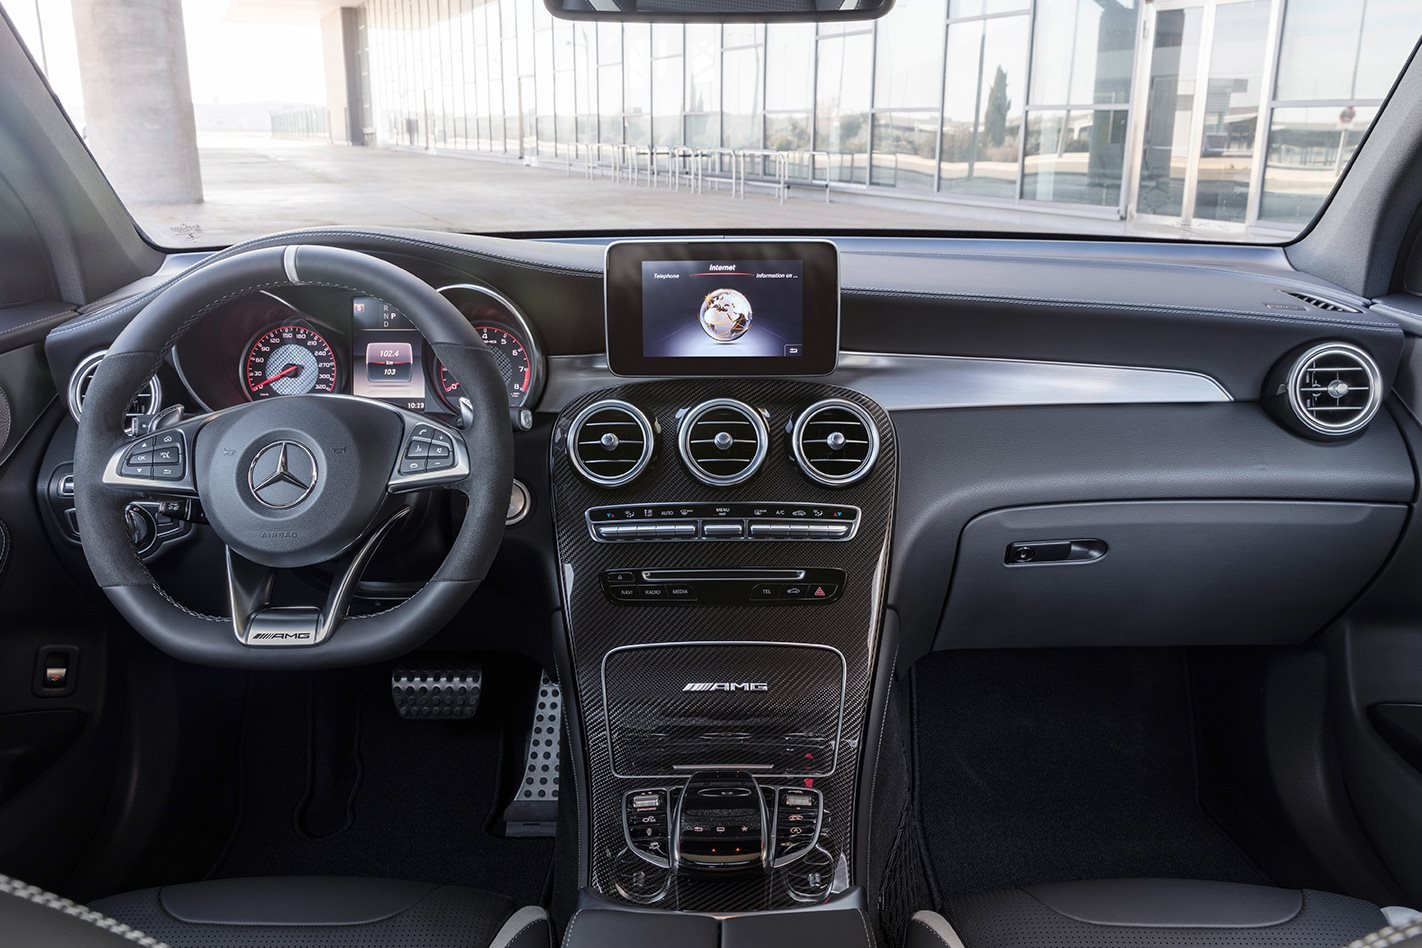 2018 Mercedes AMG GLC 63 S interior